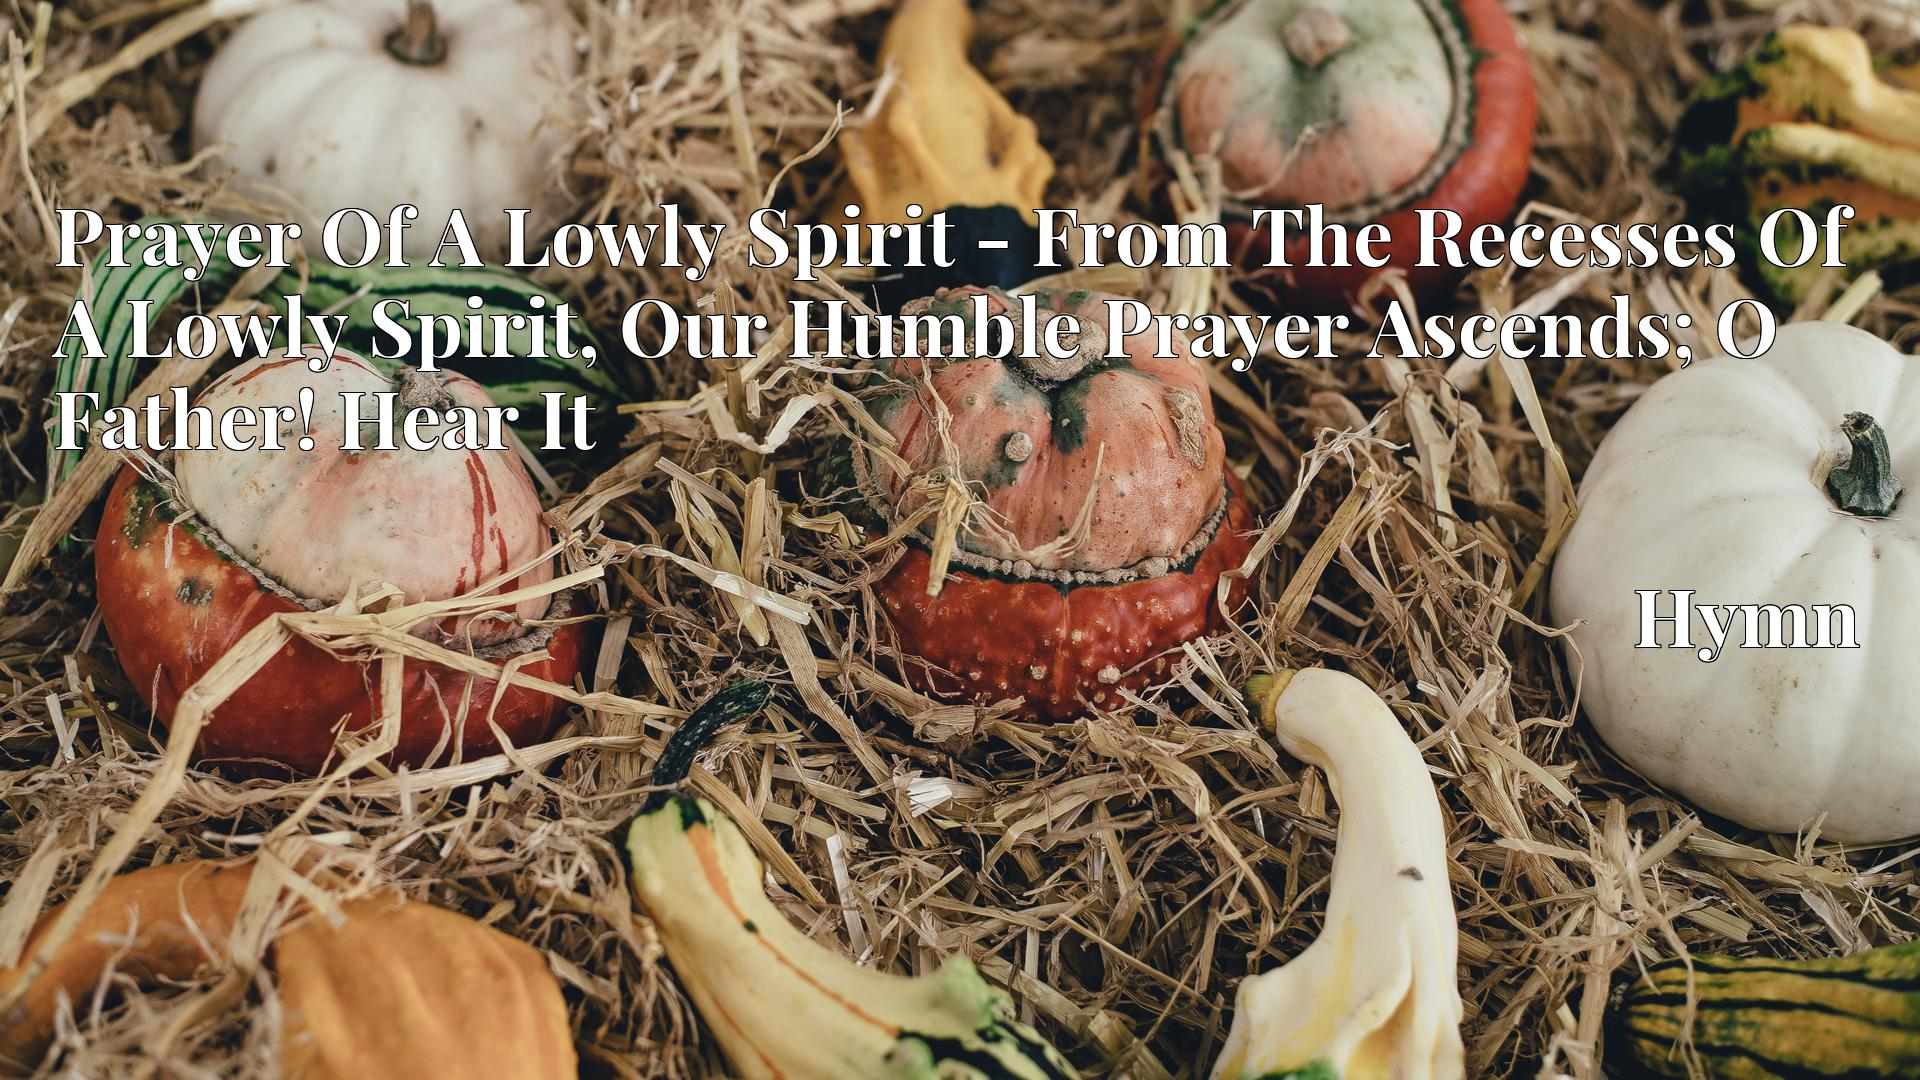 Prayer Of A Lowly Spirit - From The Recesses Of A Lowly Spirit, Our Humble Prayer Ascends; O Father! Hear It - Hymn